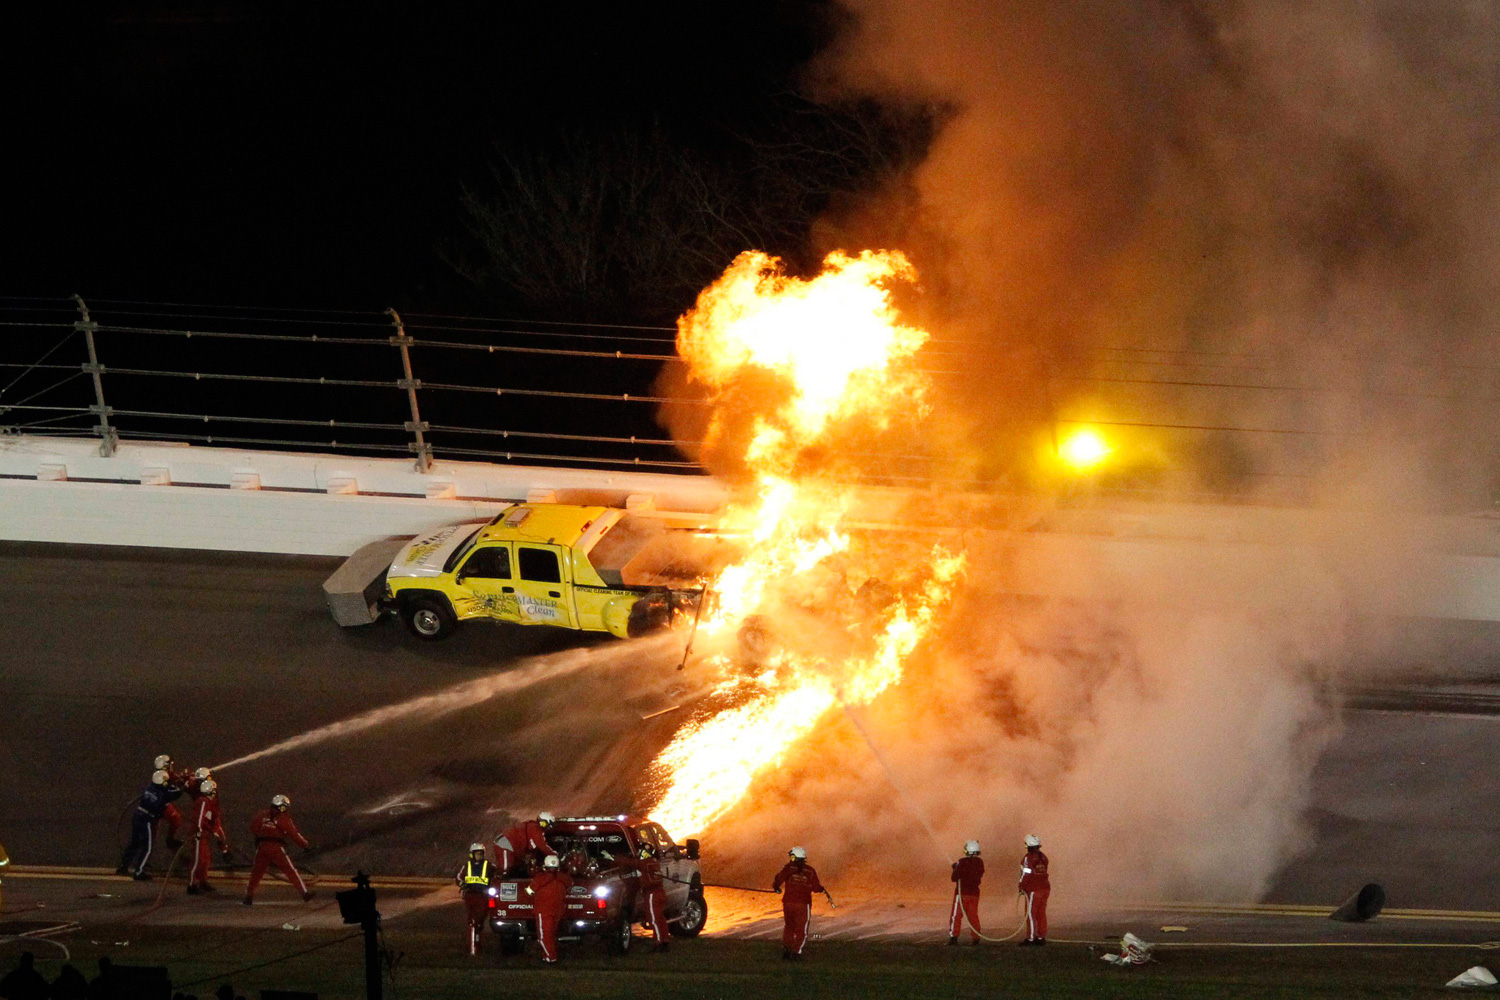 Feb. 27, 2012. A truck carrying a jet engine track dryer catches on fire in the third turn during the NASCAR Sprint Cup Series 54th Daytona 500 race at the Daytona International Speedway in Daytona Beach, Fla.